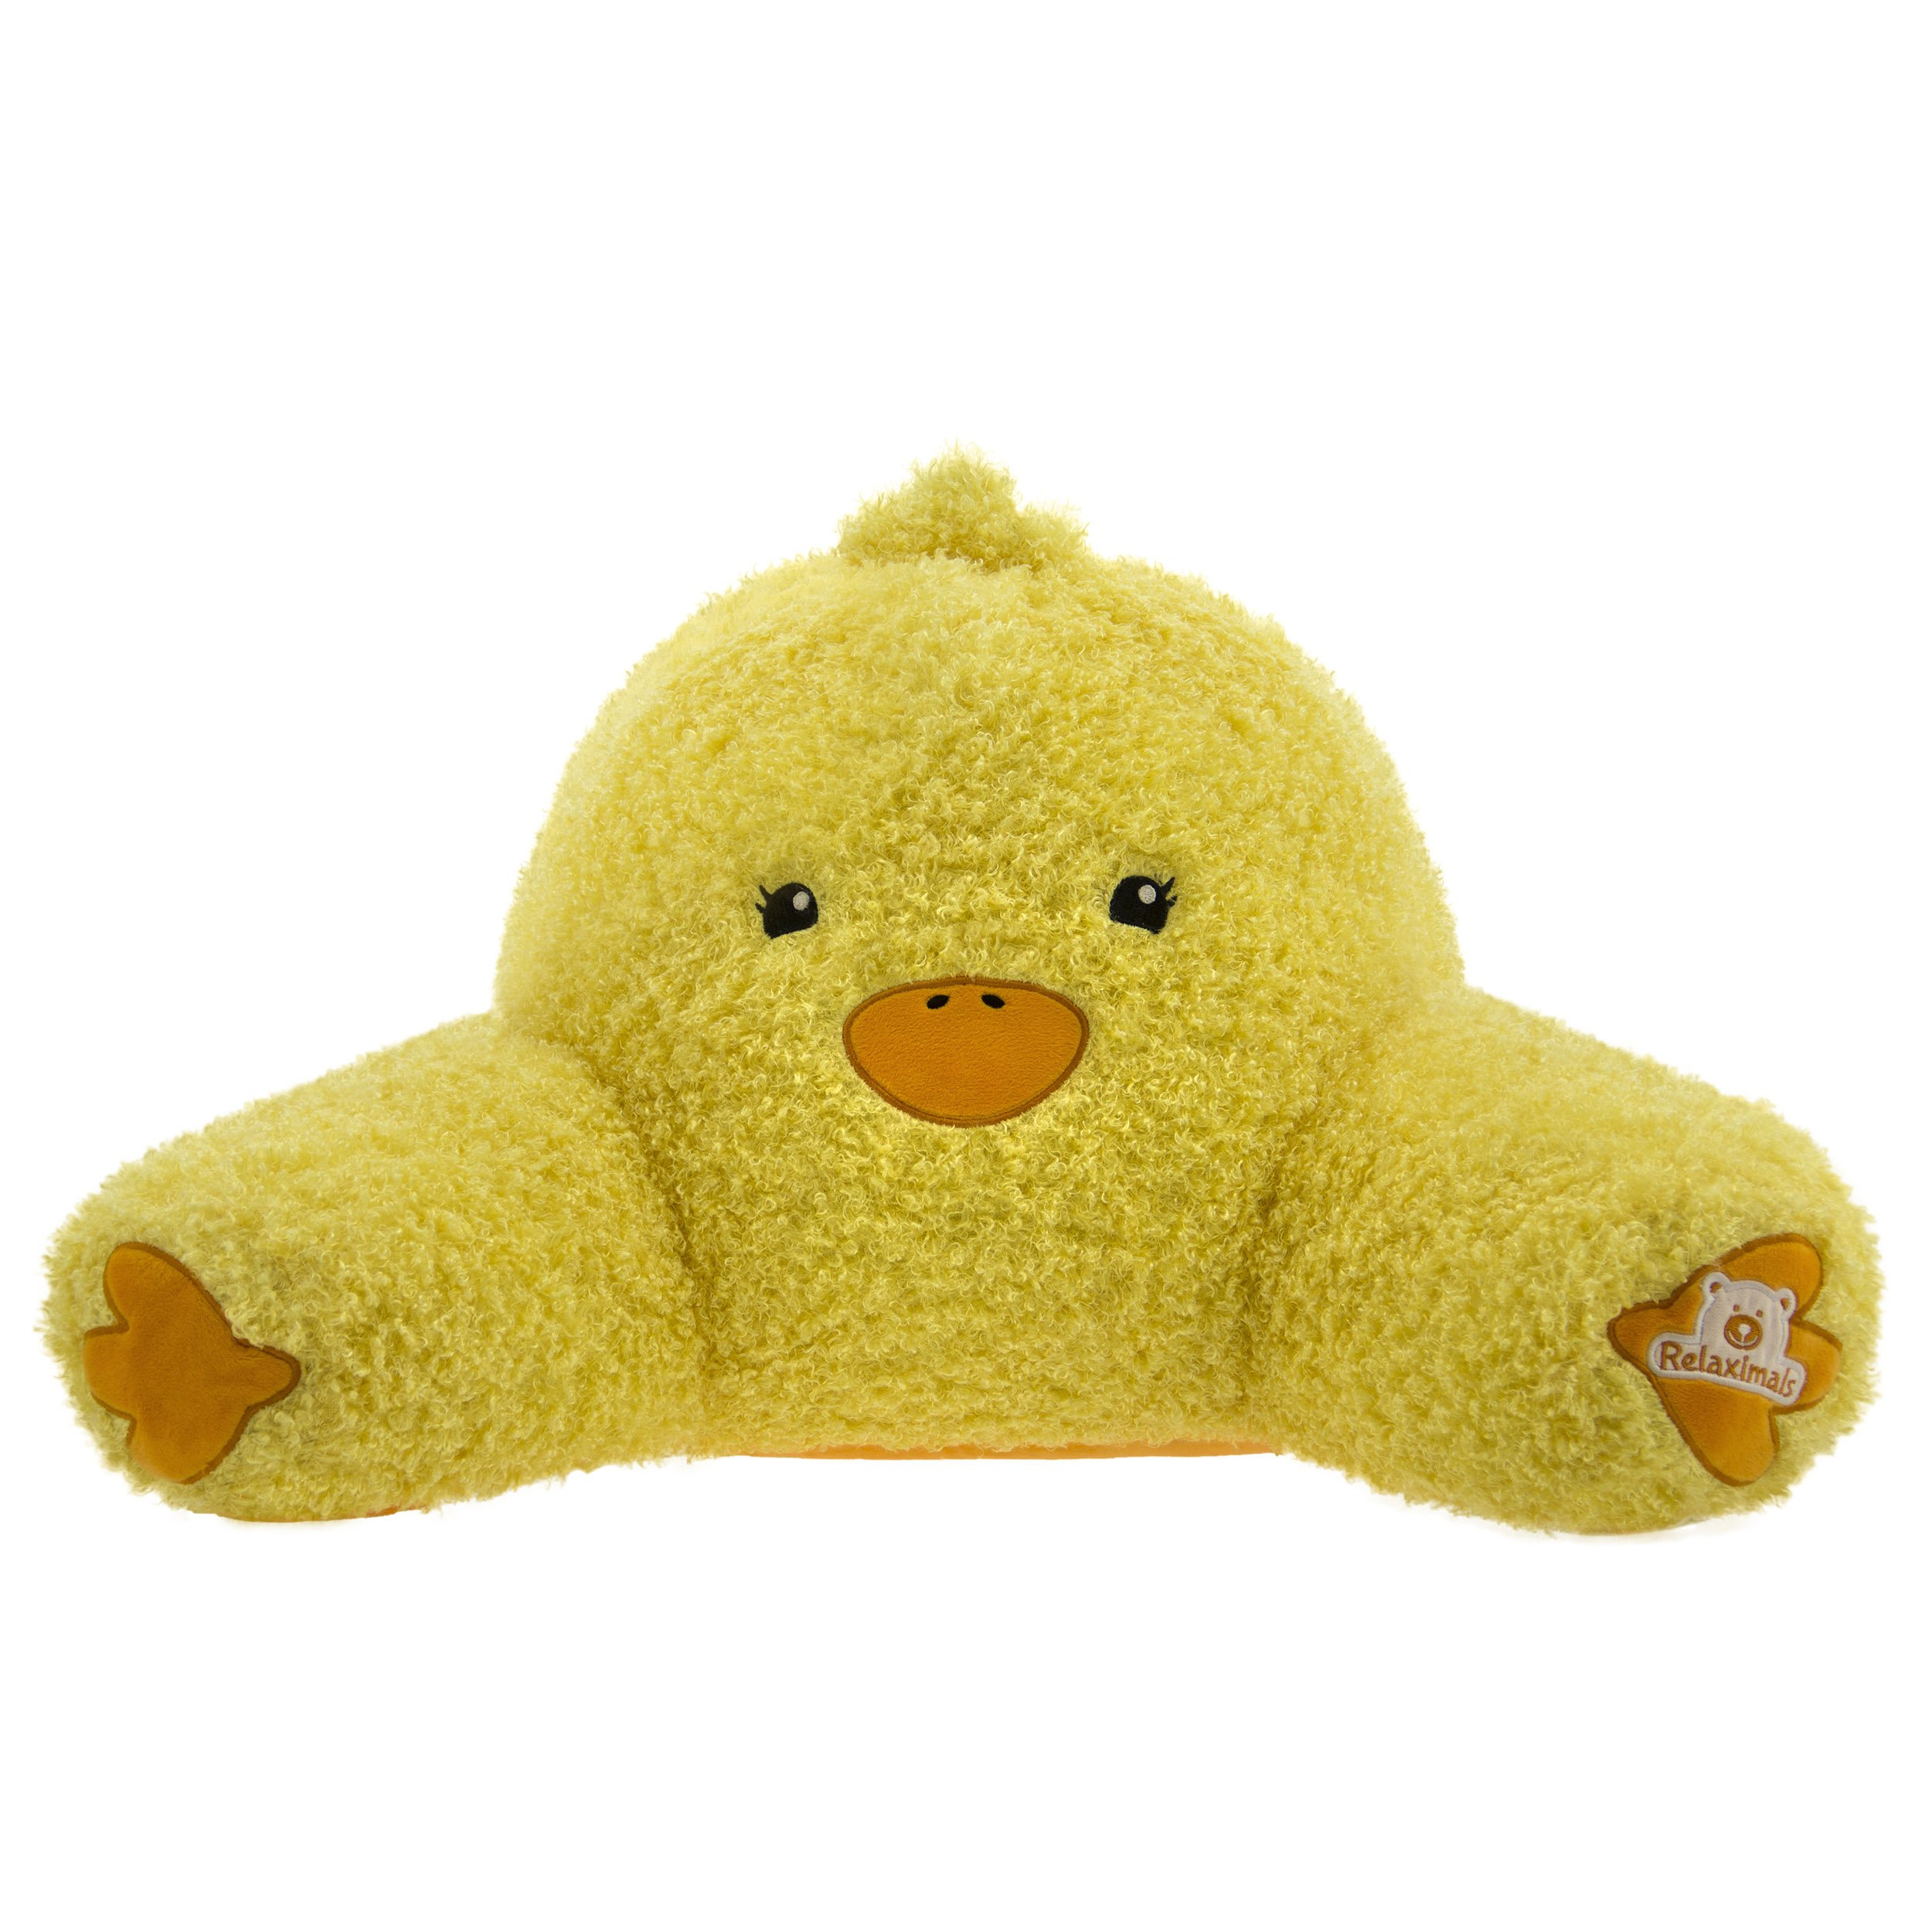 Relaximals Baby Chicken Kids Reading Pillow by Relaximals